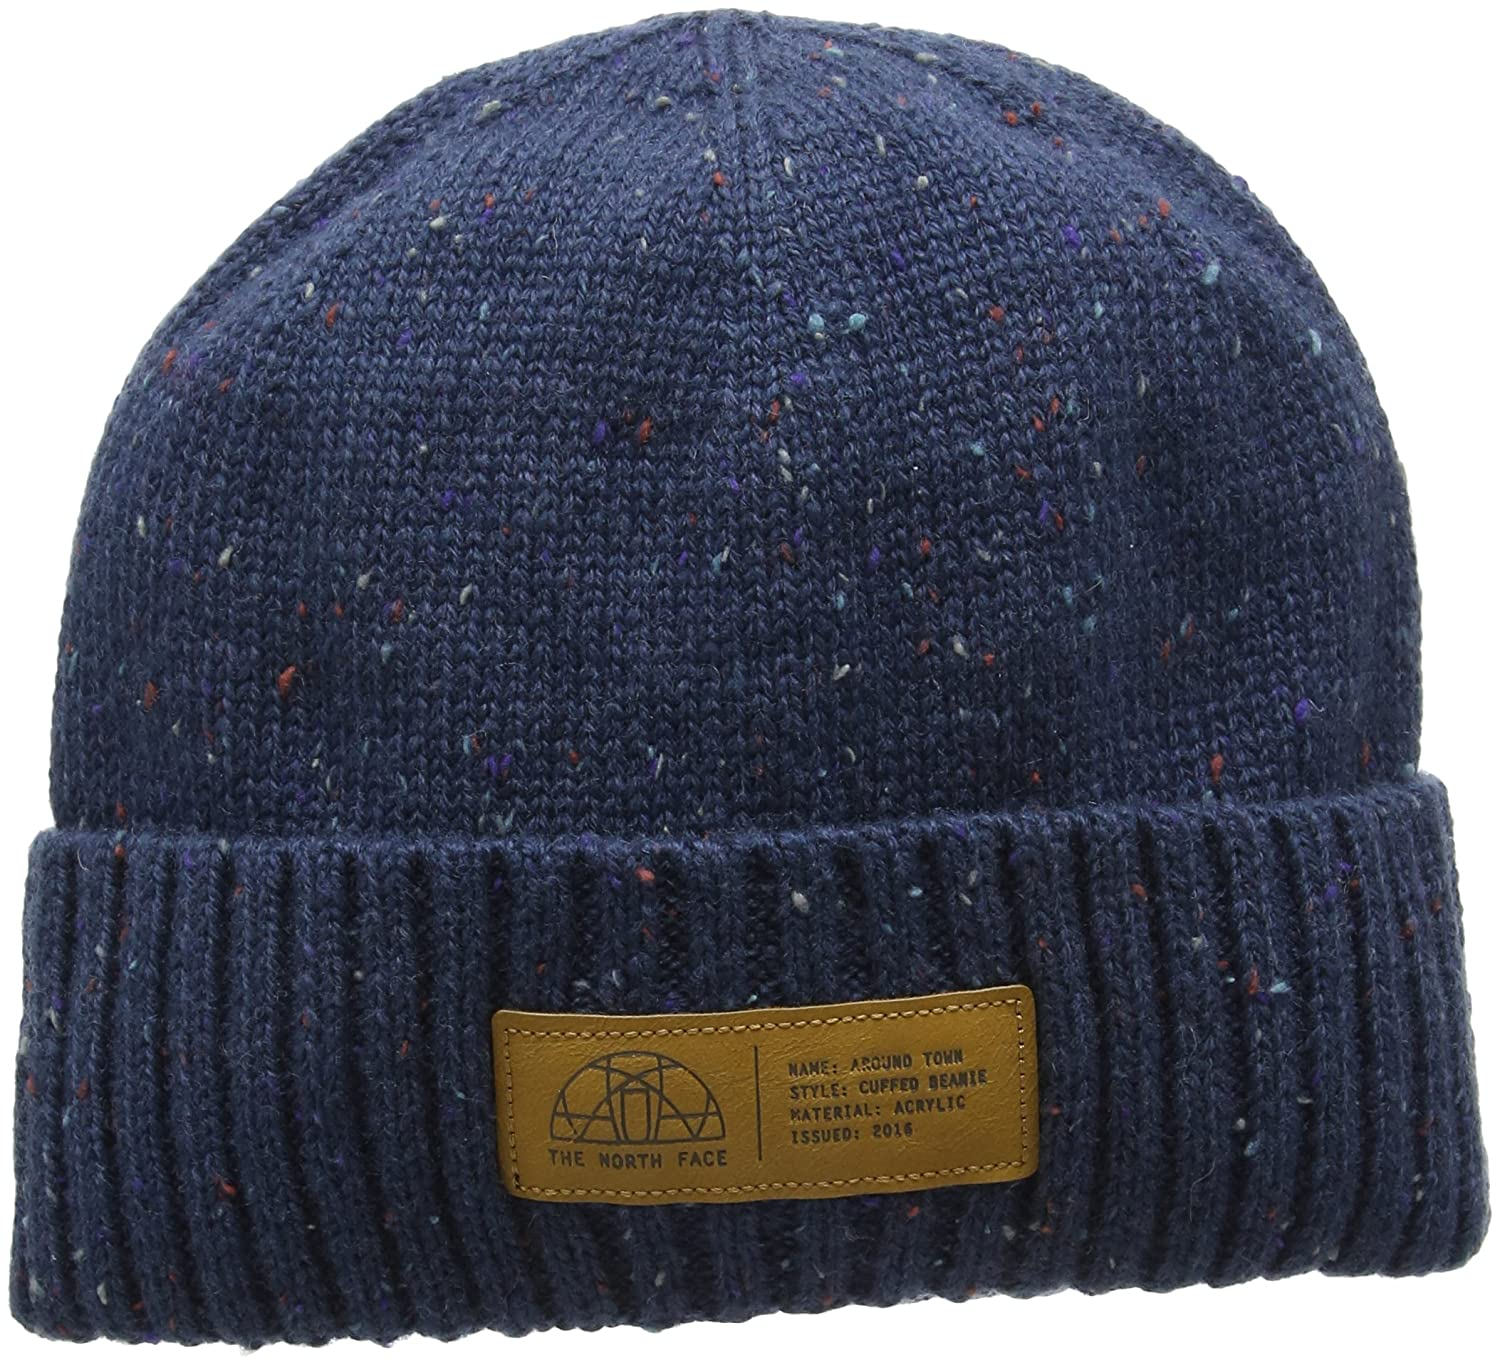 77da9f362 The North Face Women's Around Town Beanie, Shady Blue One Size at ...